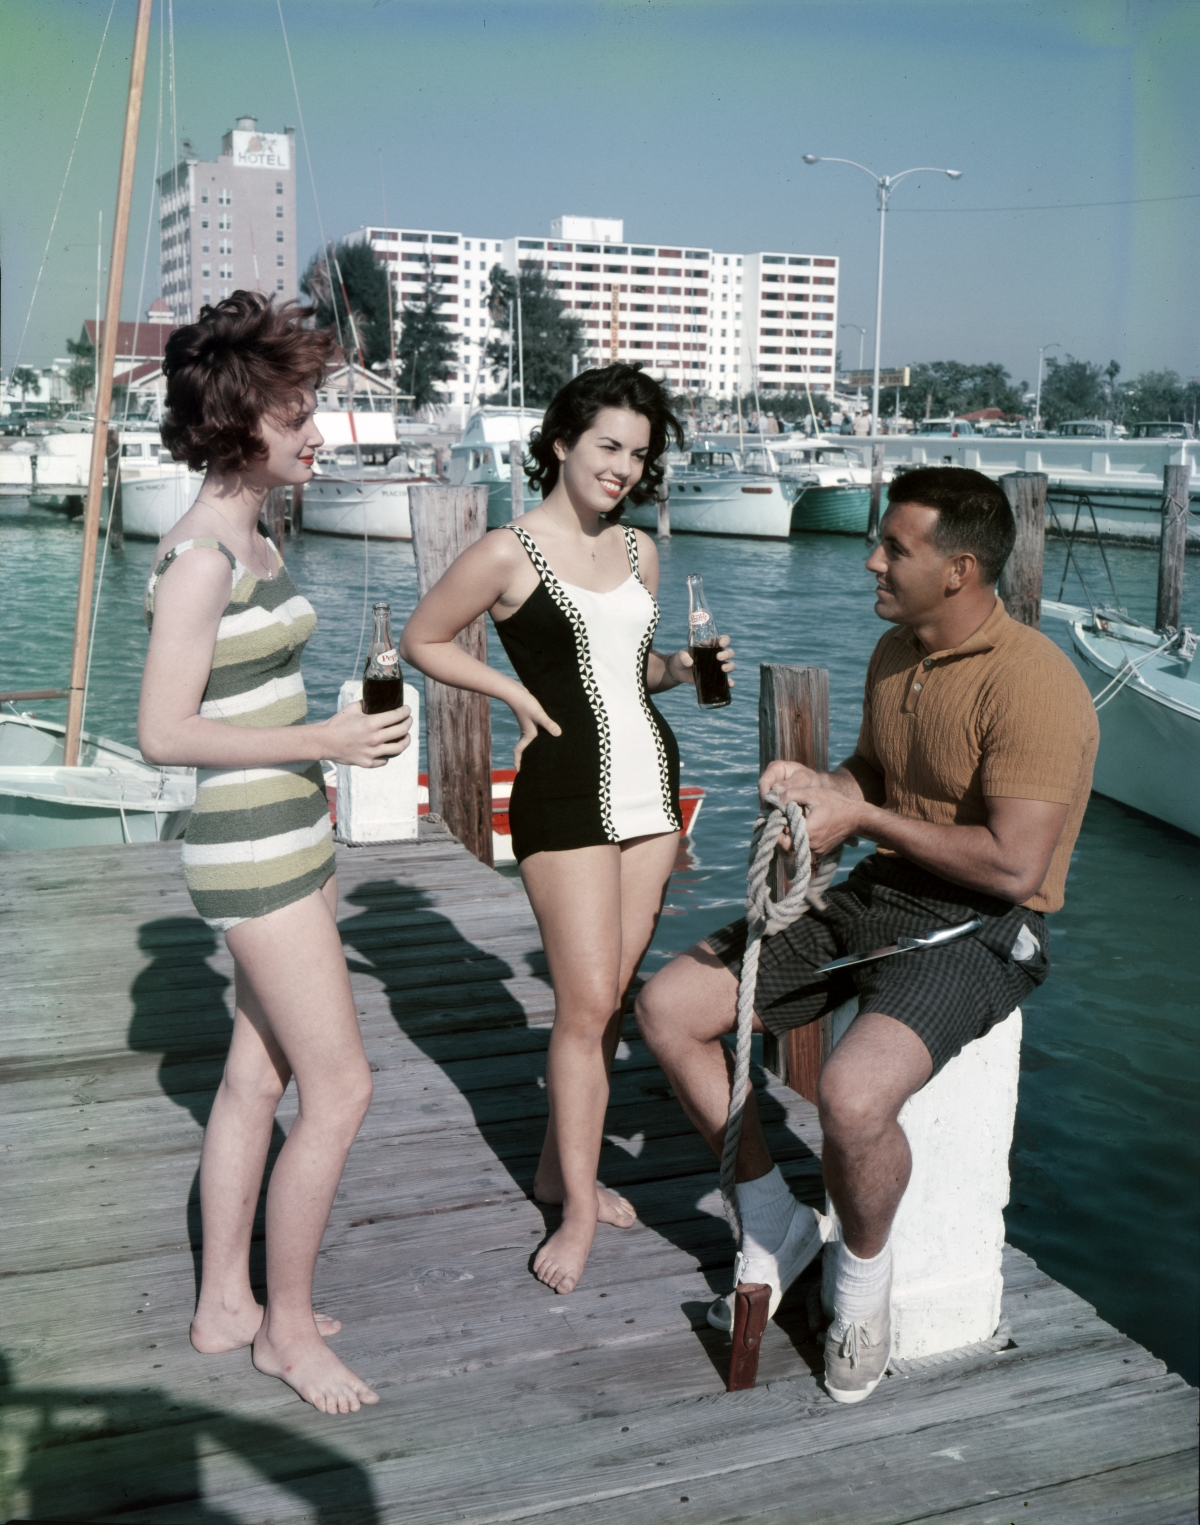 Man with women in bathing suits at a marina in Sarasota.